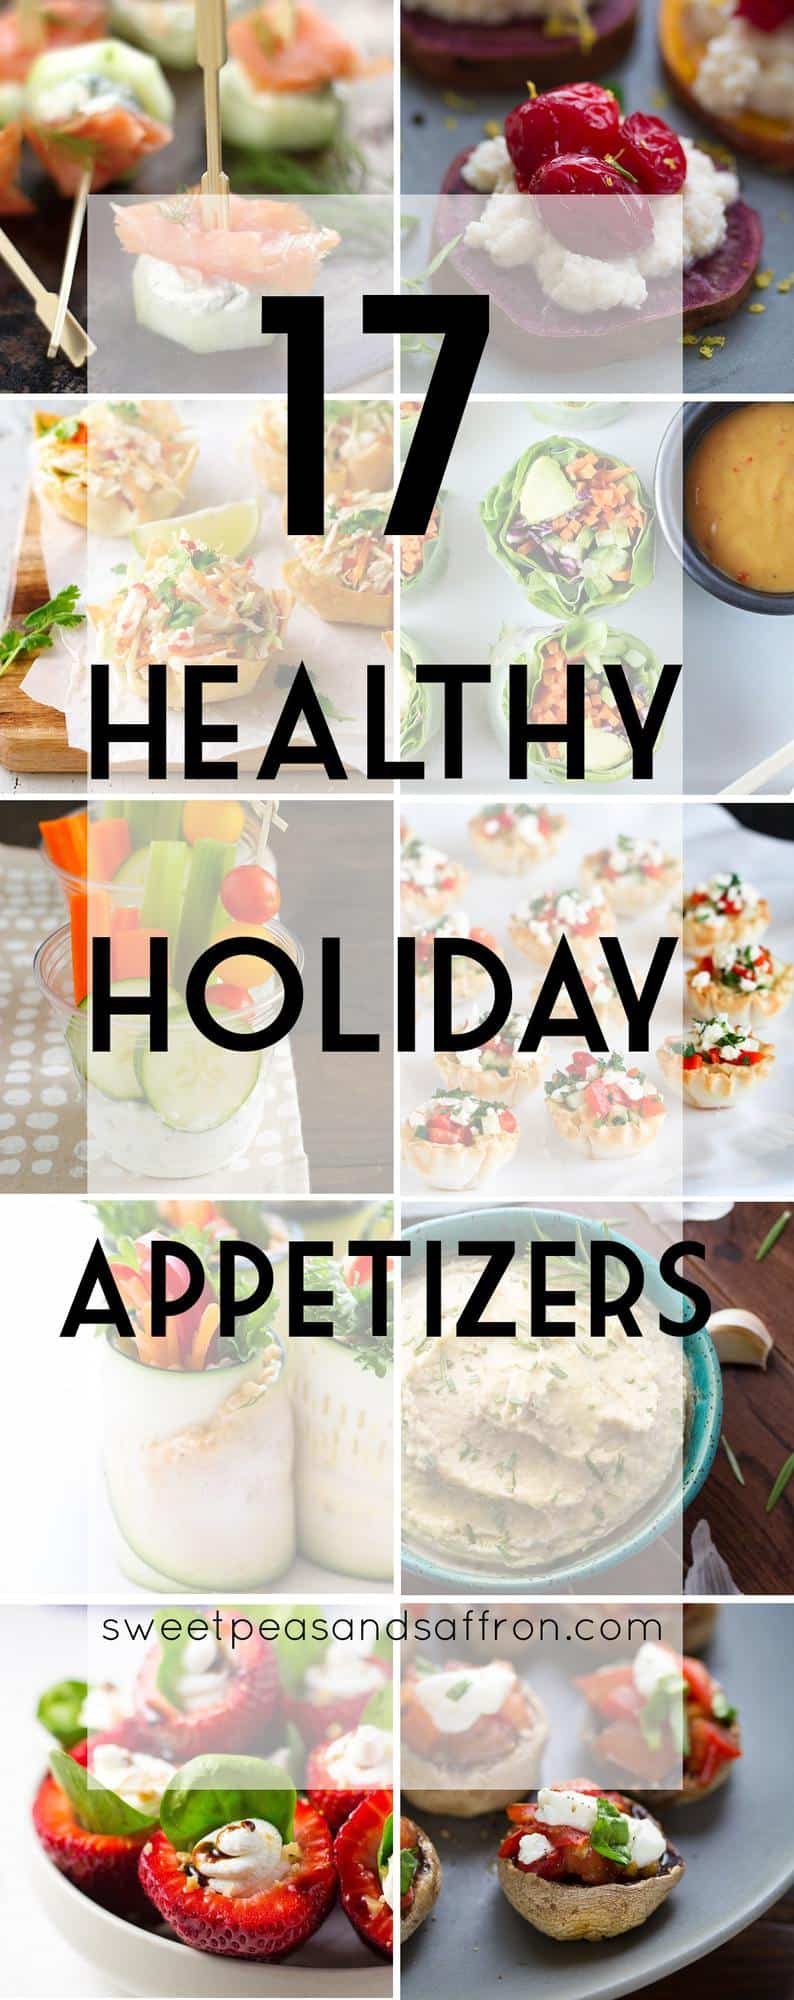 17 Healthy Holiday Appetizers